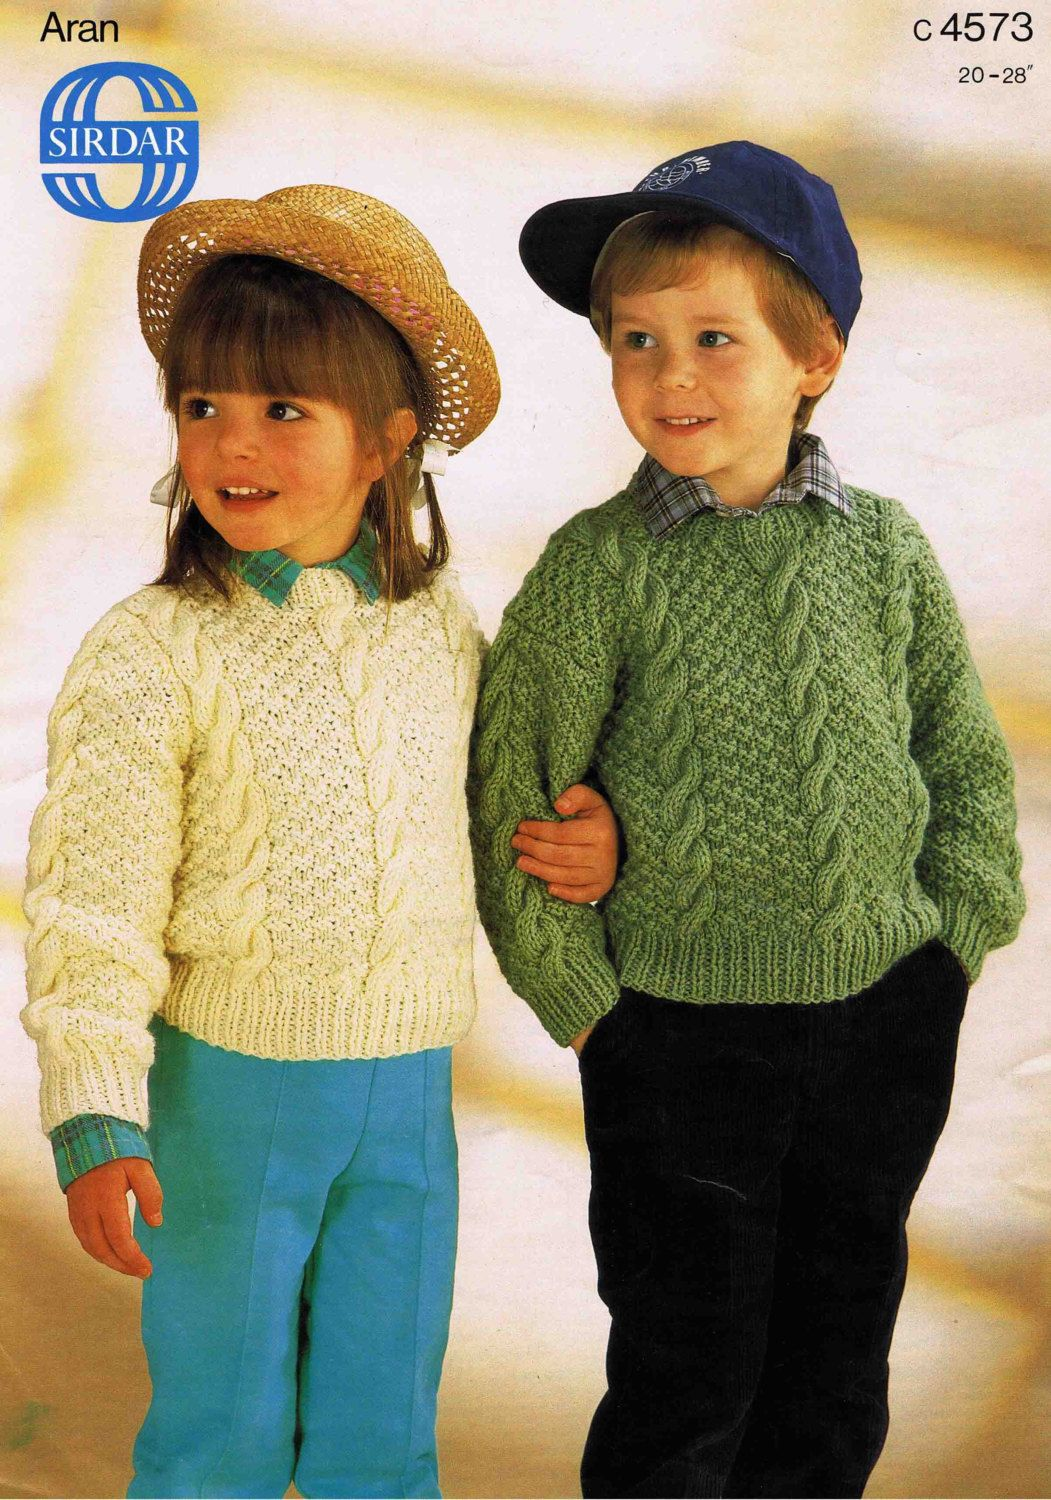 Child set in sleeve and dropped shoulder sweater pullover jumper child set in sleeve and dropped shoulder sweater pullover jumper size 51 71 cm inch sirdar aran vintage retro bankloansurffo Image collections